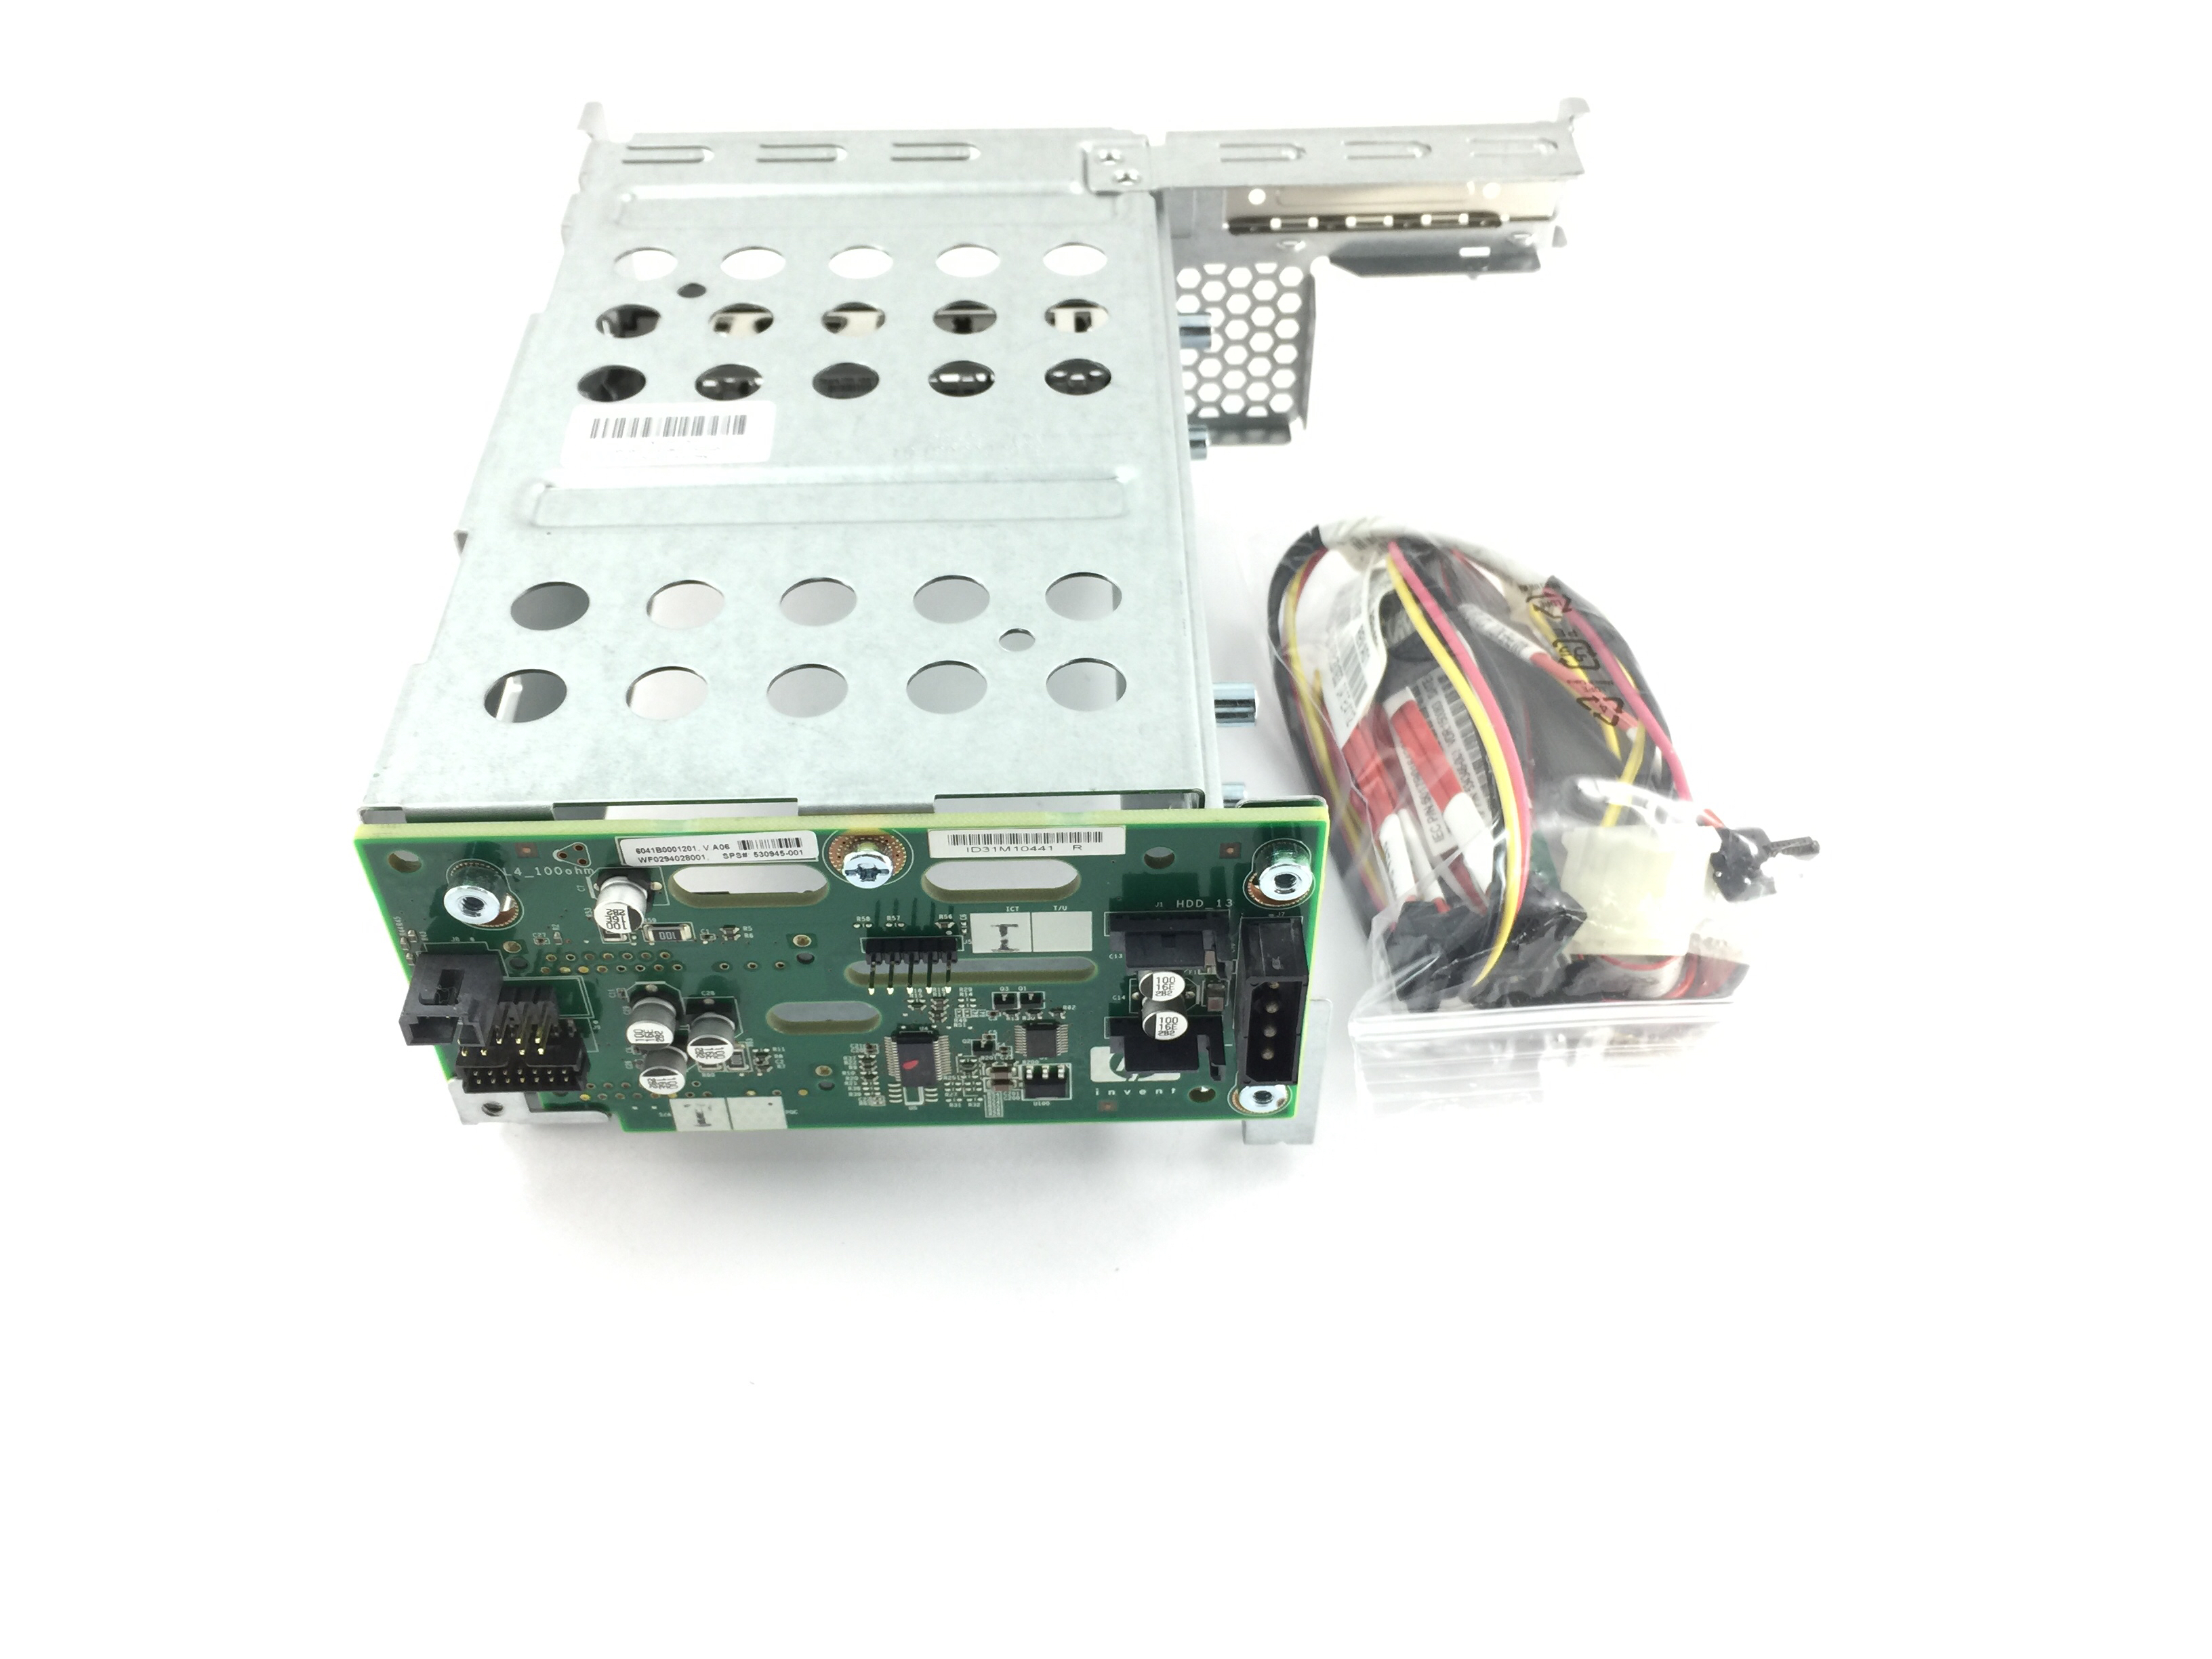 HP DL180 G6 SAS Backplane w/ Cage & Cable (530945-001)